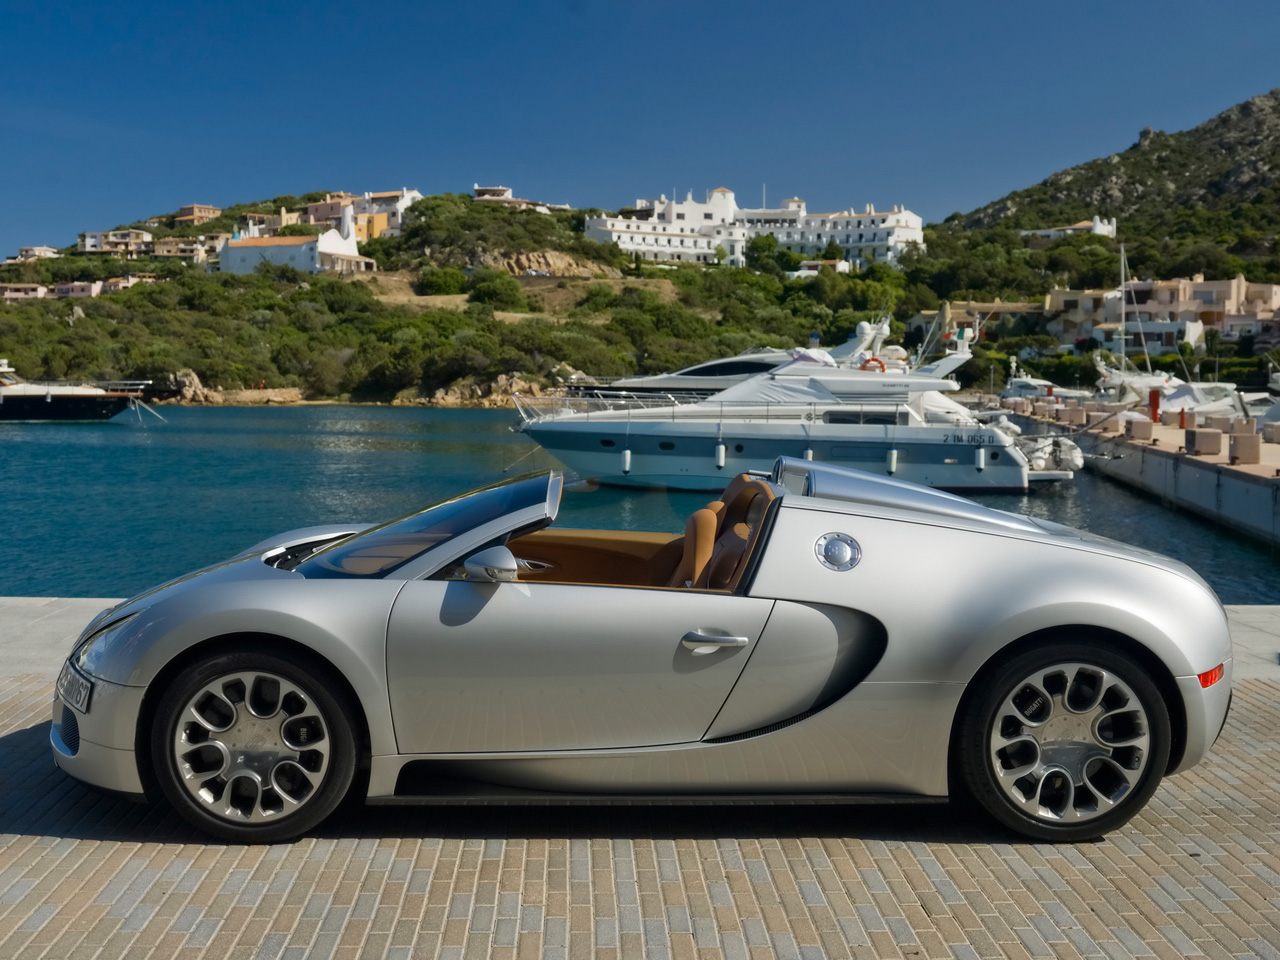 wallpaper world bugatti veyron 16 4 grand sport photos. Black Bedroom Furniture Sets. Home Design Ideas